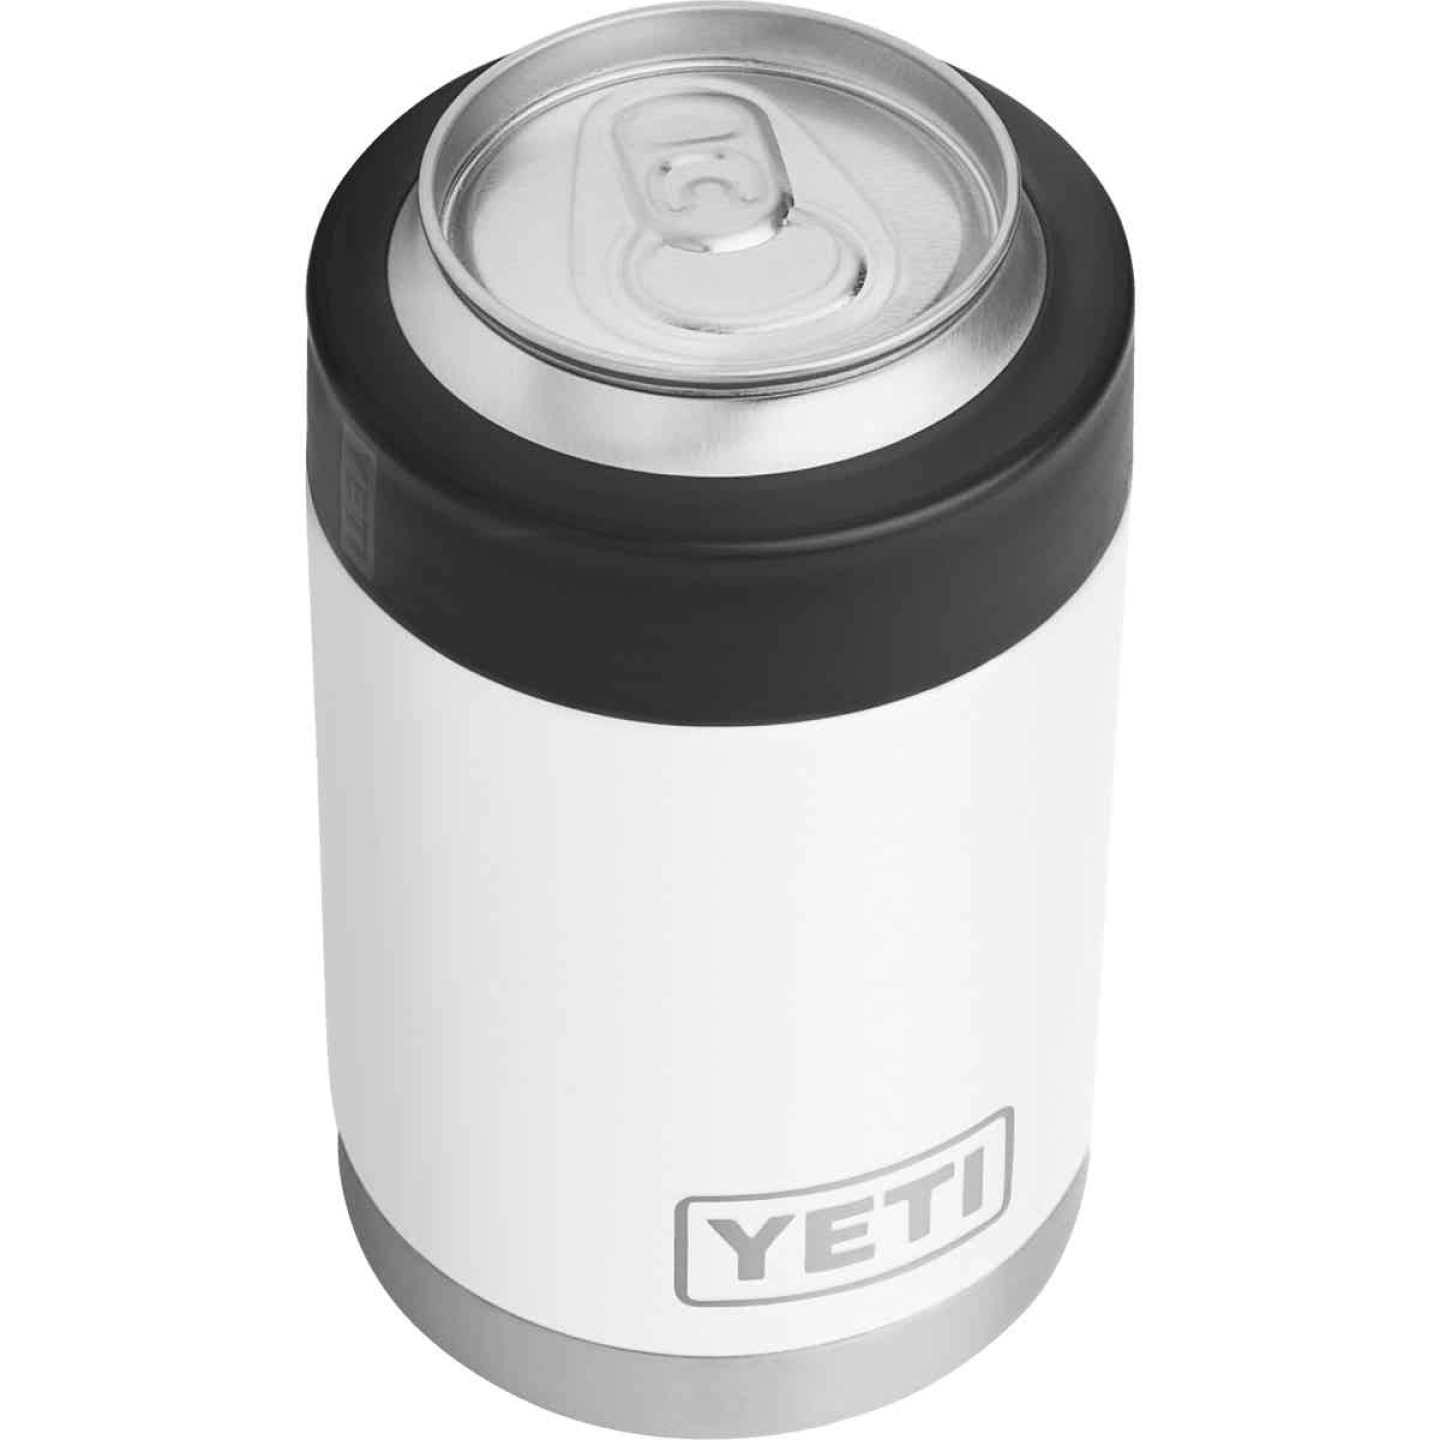 Yeti Rambler Colster 12 Oz. White Stainless Steel Insulated Drink Holder Image 3